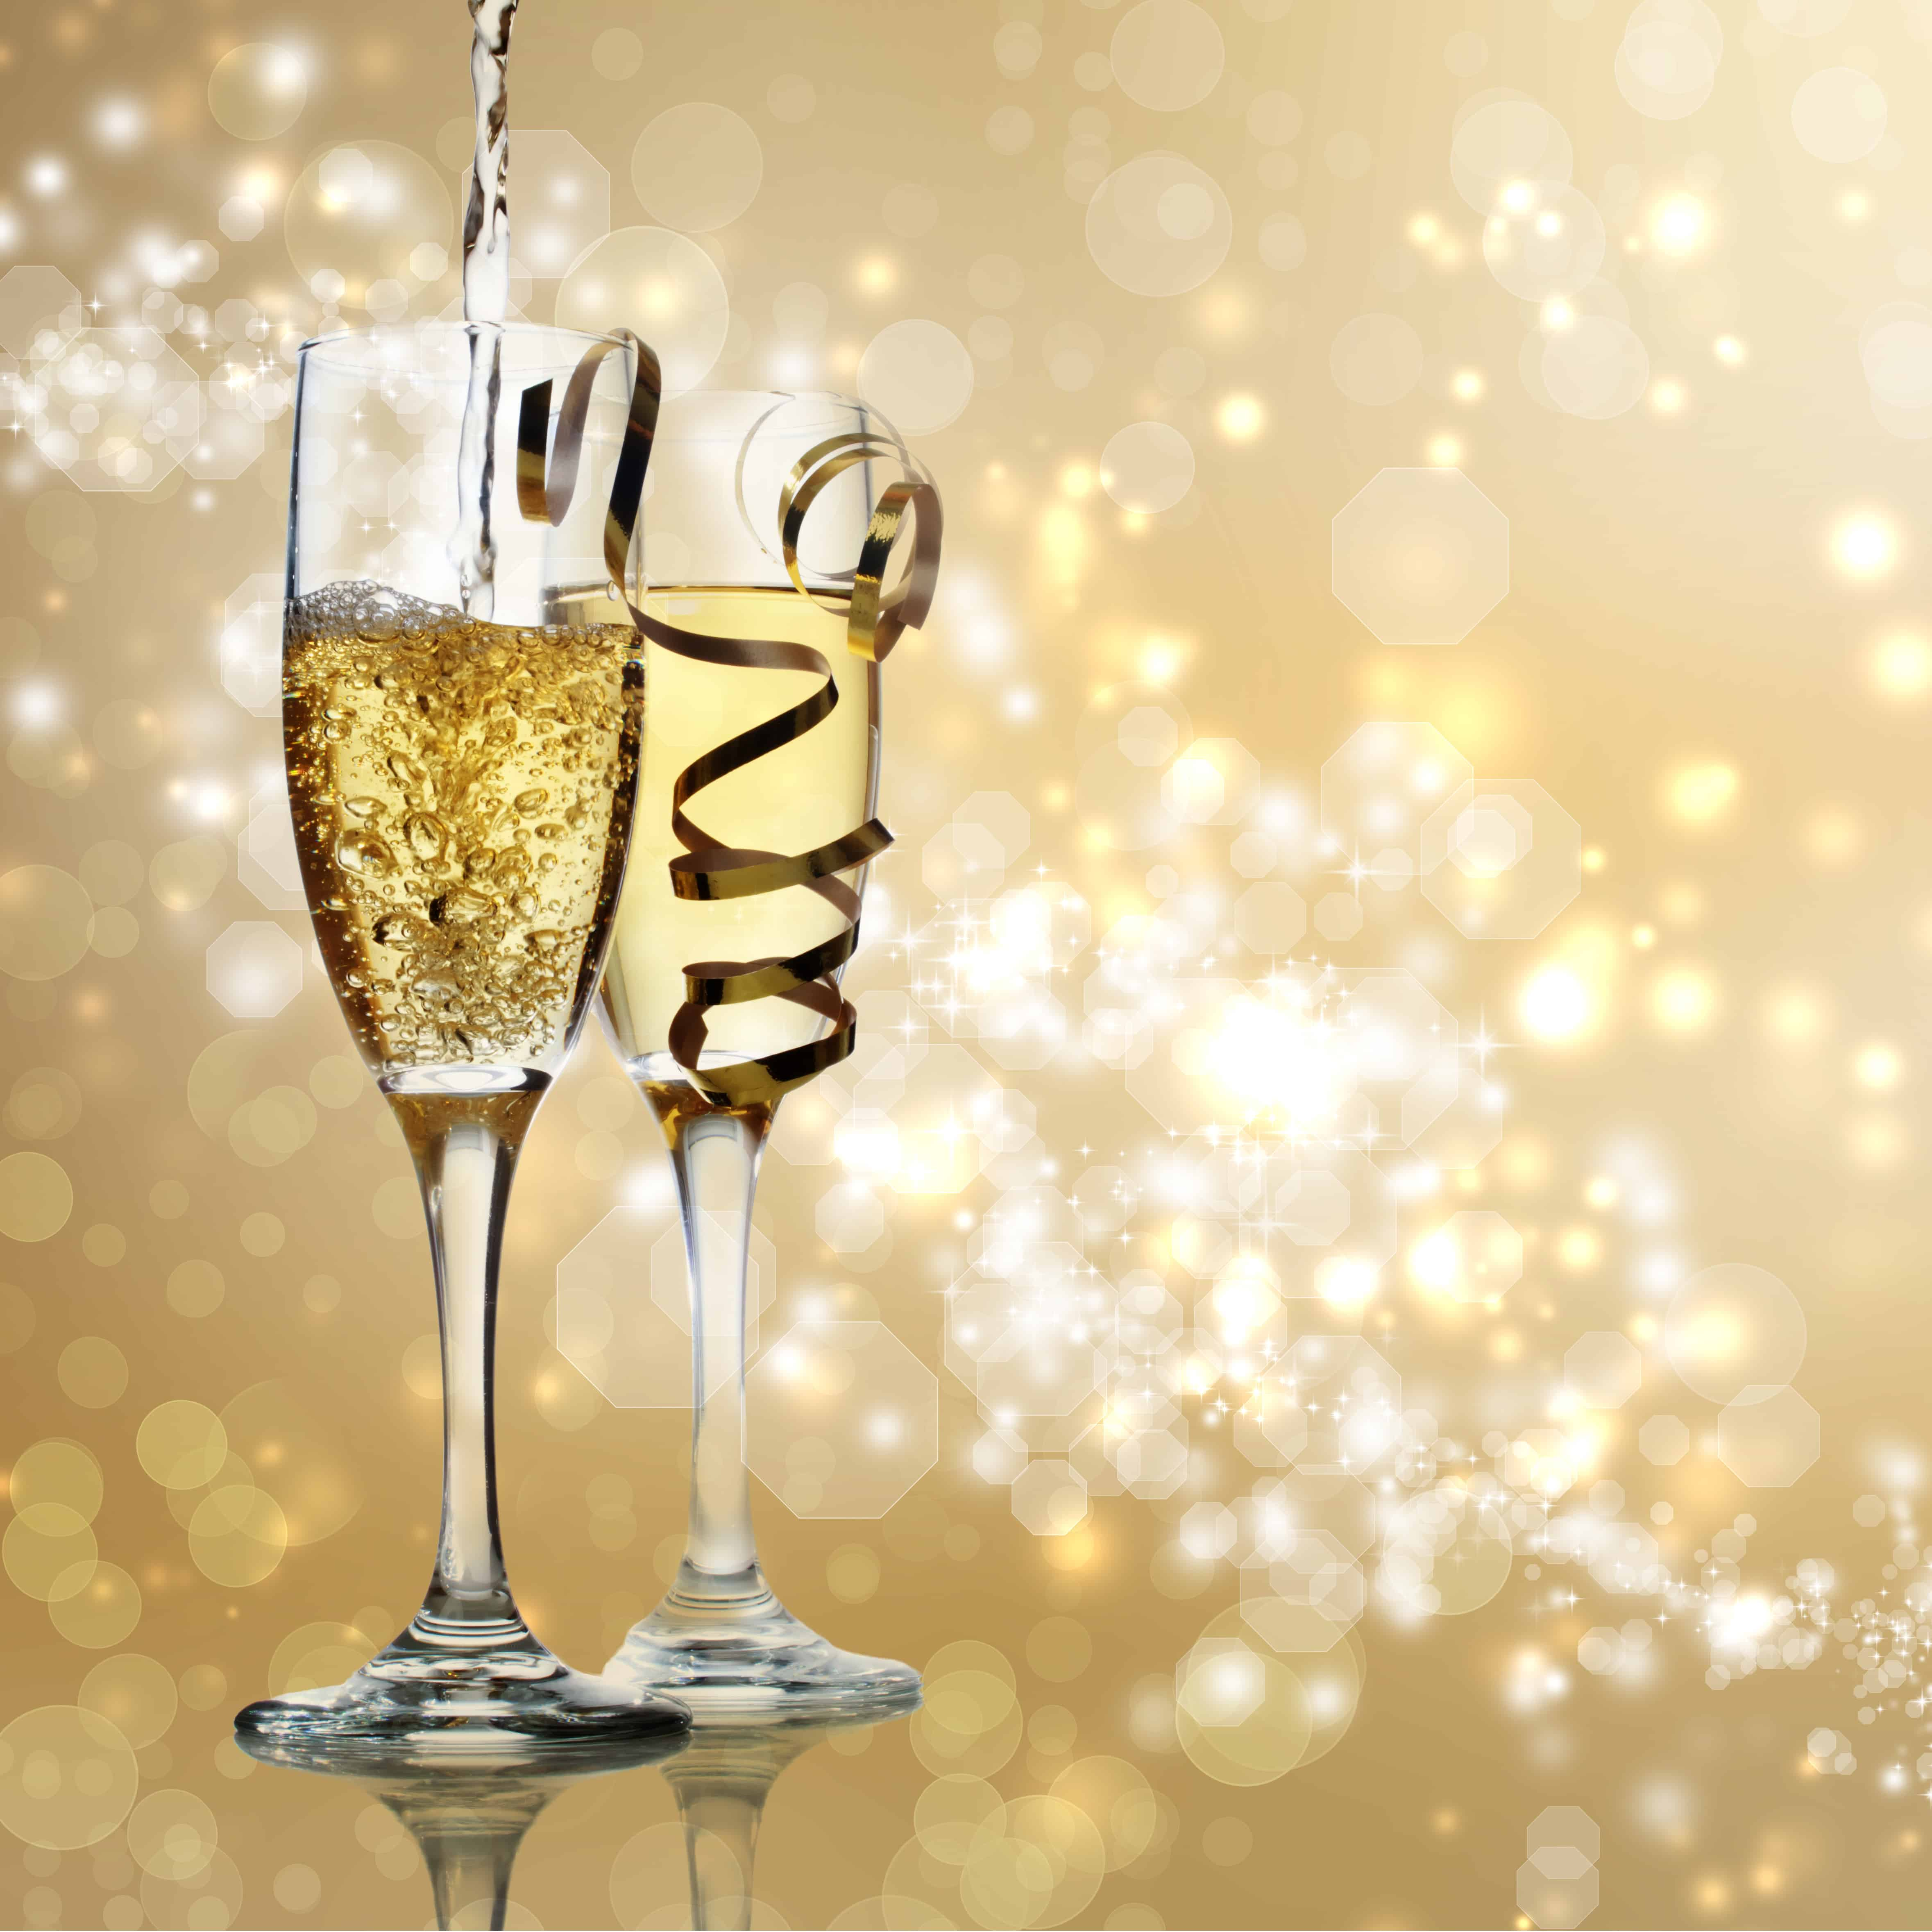 3rd Annual New Year's Eve Party - Stay Tuned for Details